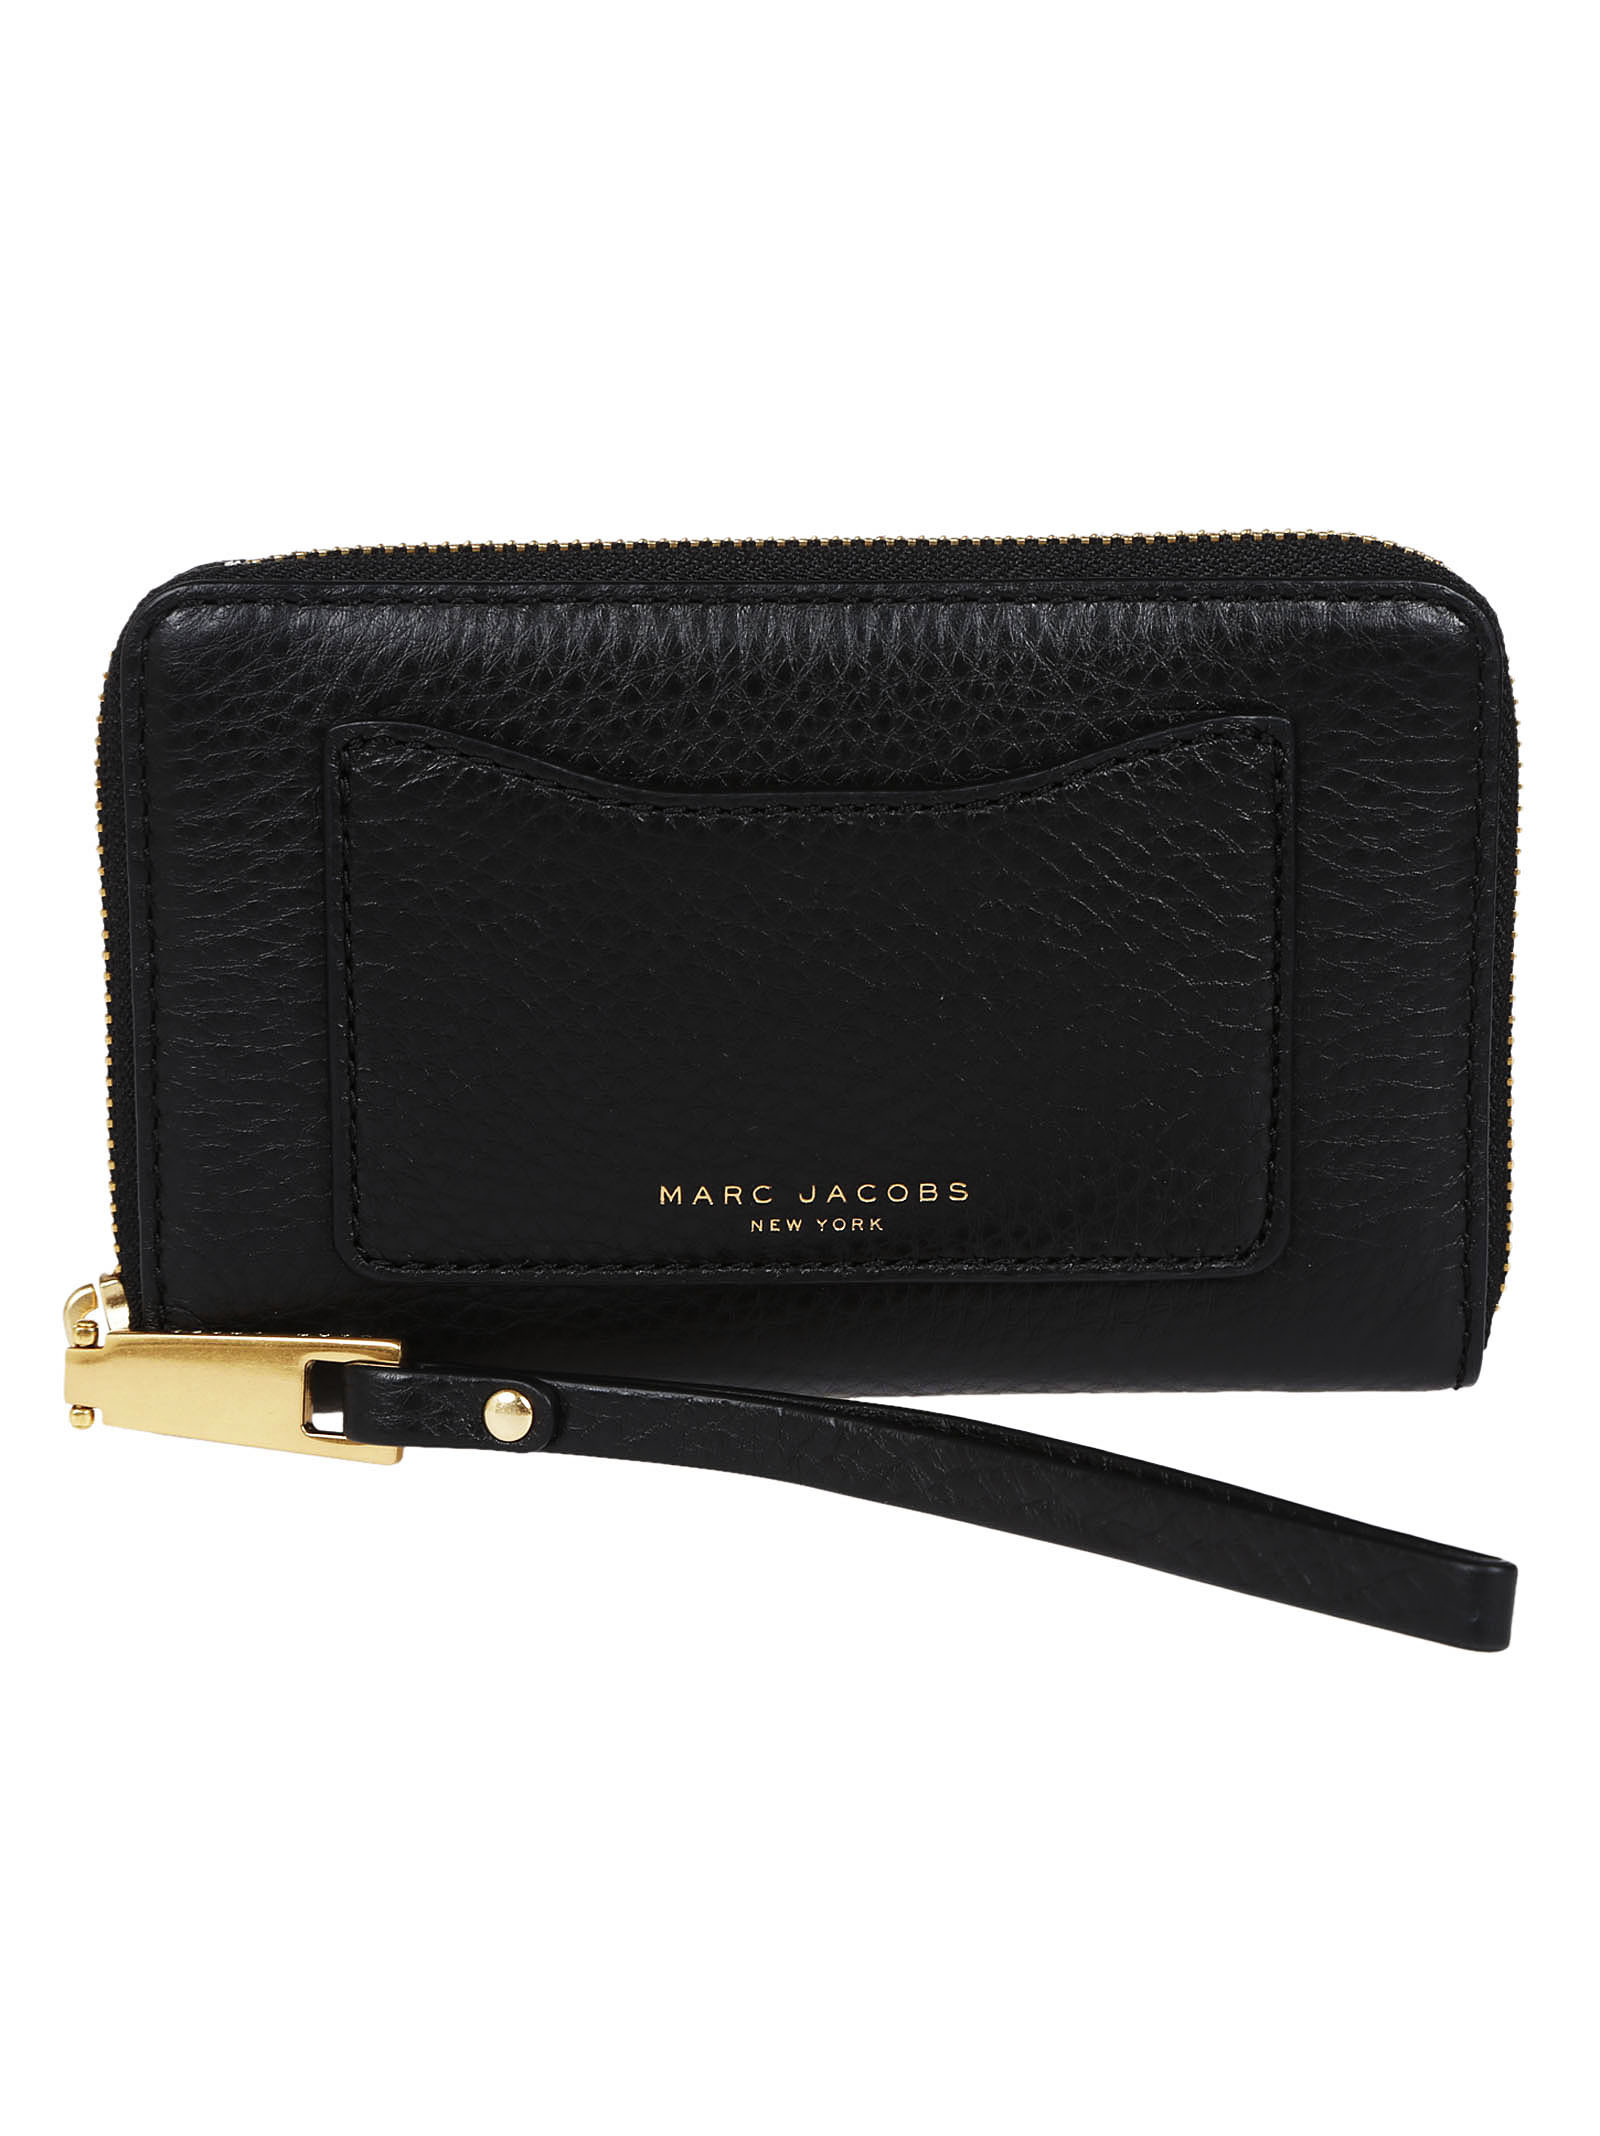 marc jacobs female marc jacobs recruit phone wallet